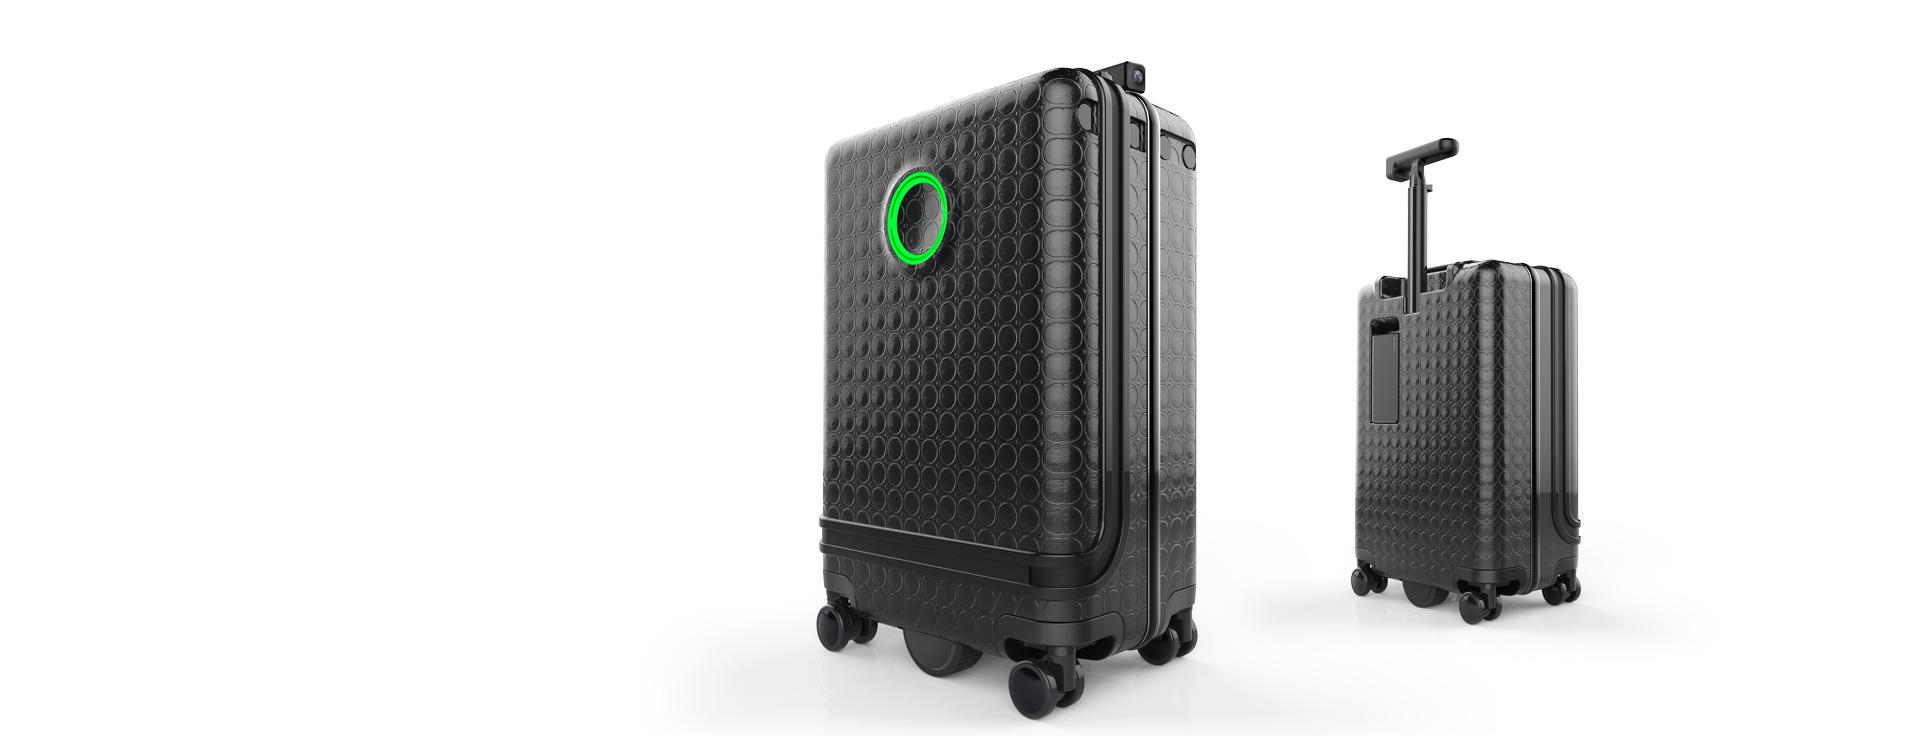 Airwheel SR5 intelligent self-driving suitcase